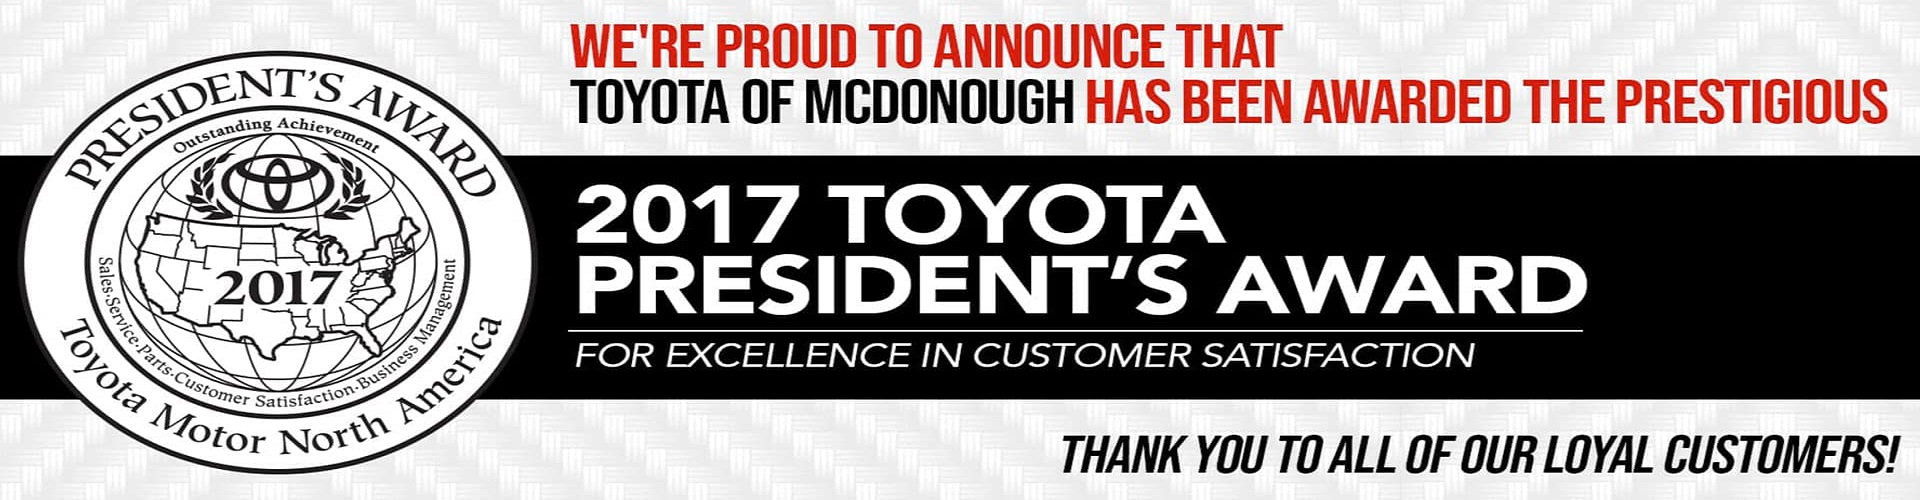 Toyota of McDonough Parts Banner 4